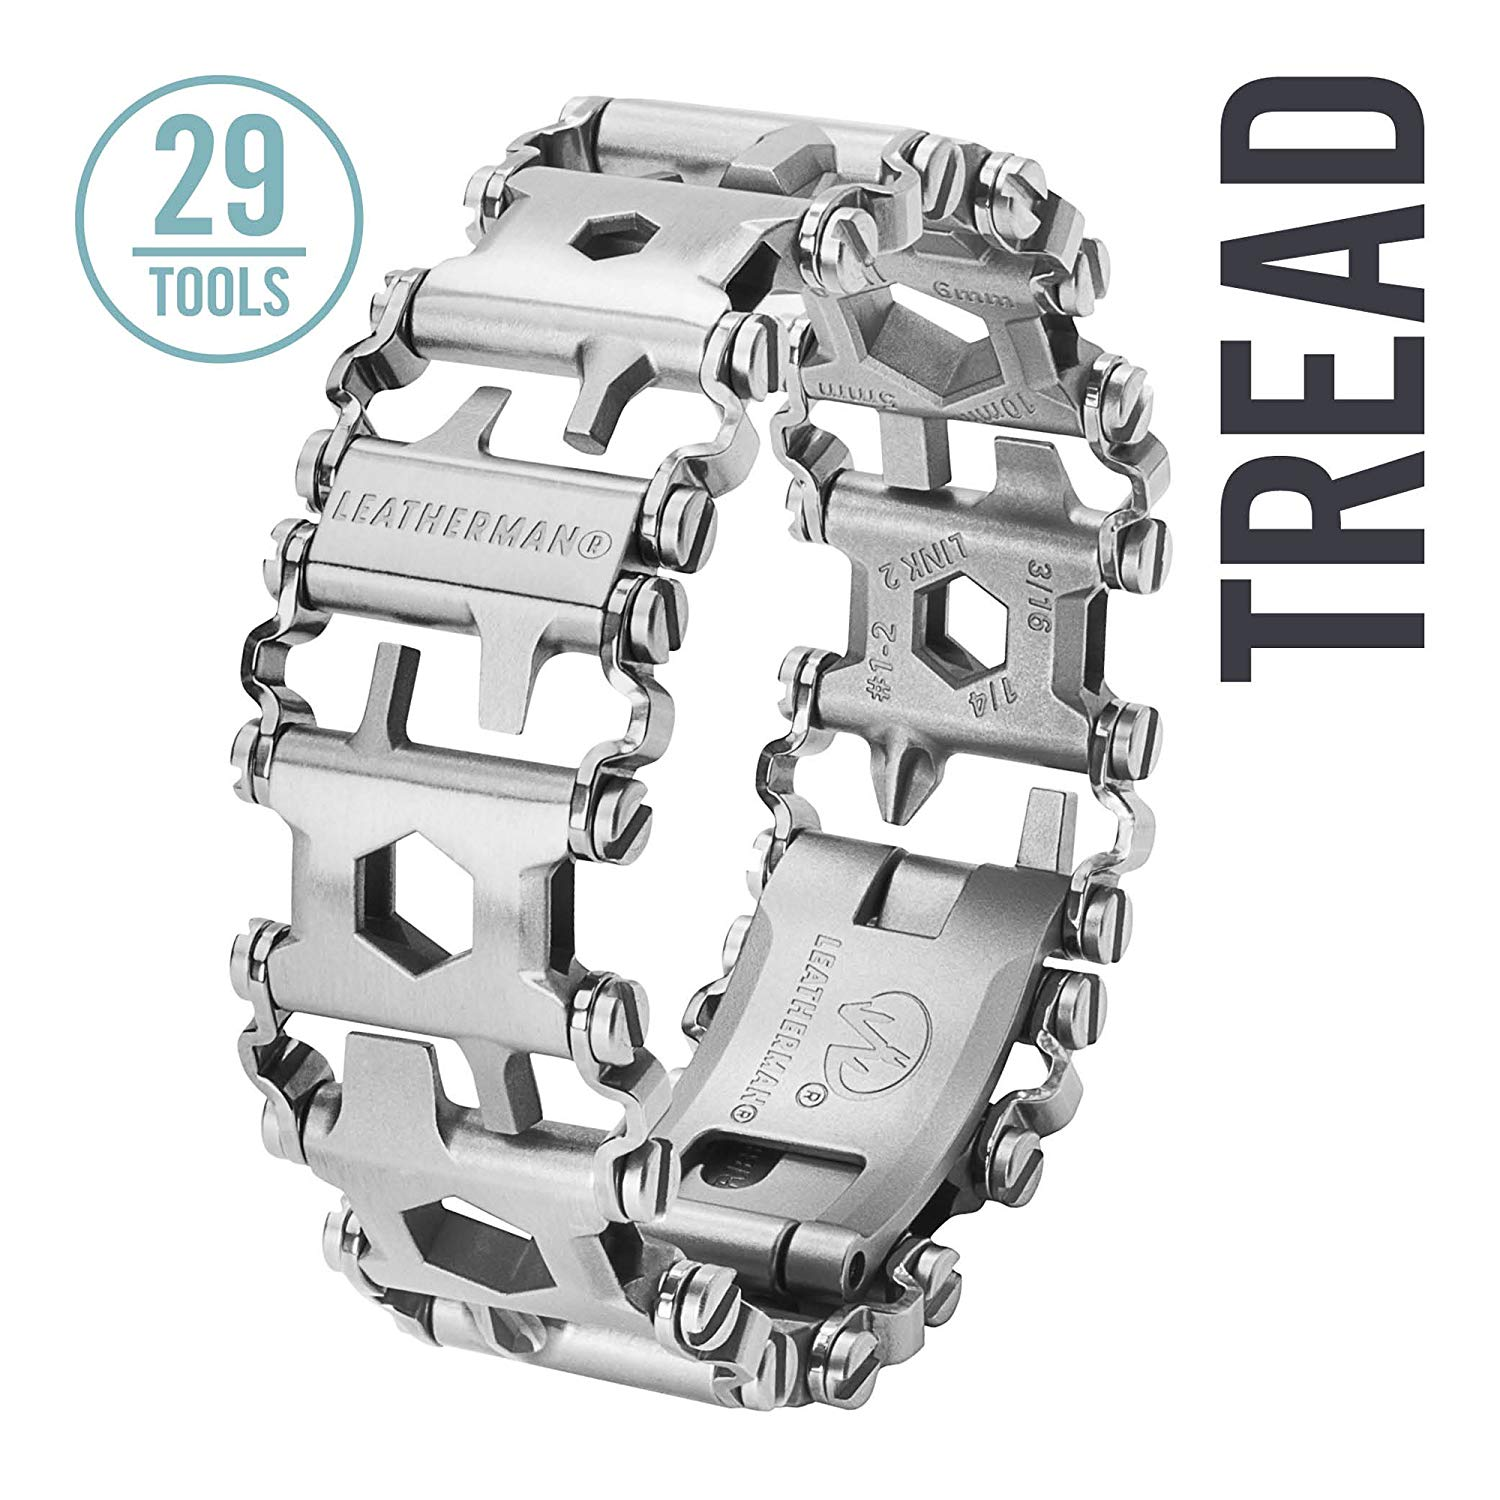 Leatherman Tread Bracelet as one of the essential camping gear